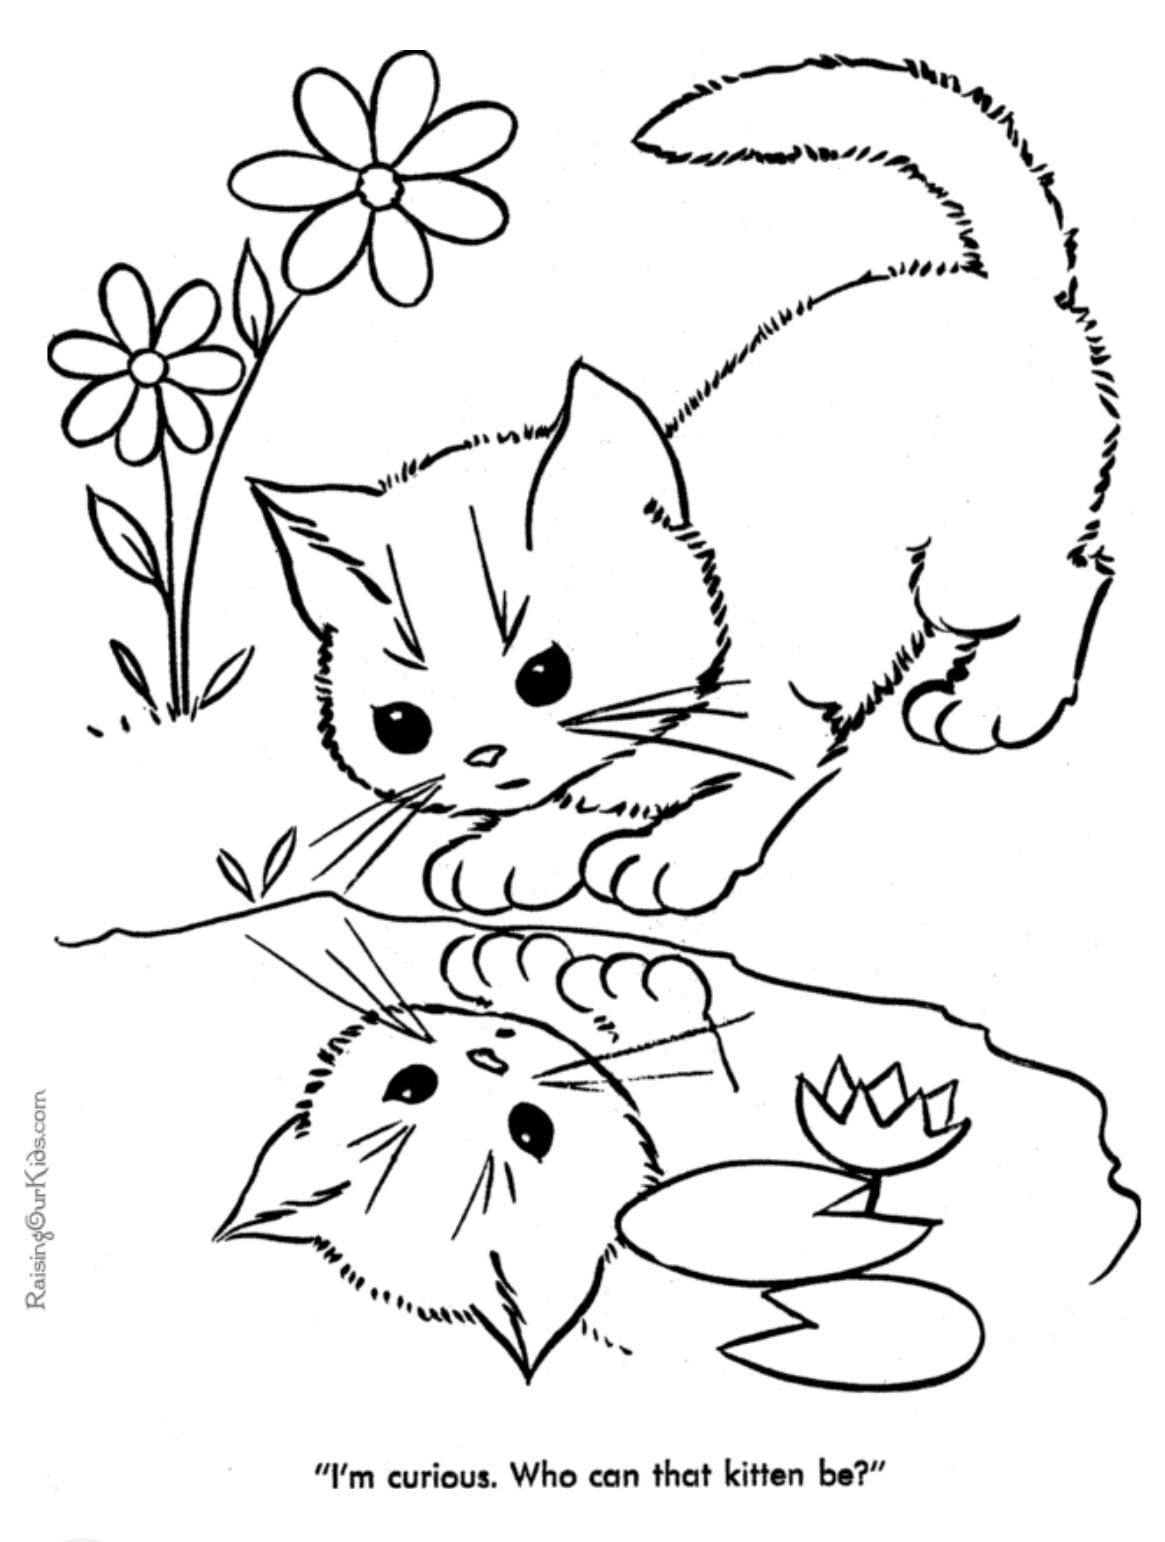 Pin von Colleen Sterling auf Adult coloring pages | Pinterest